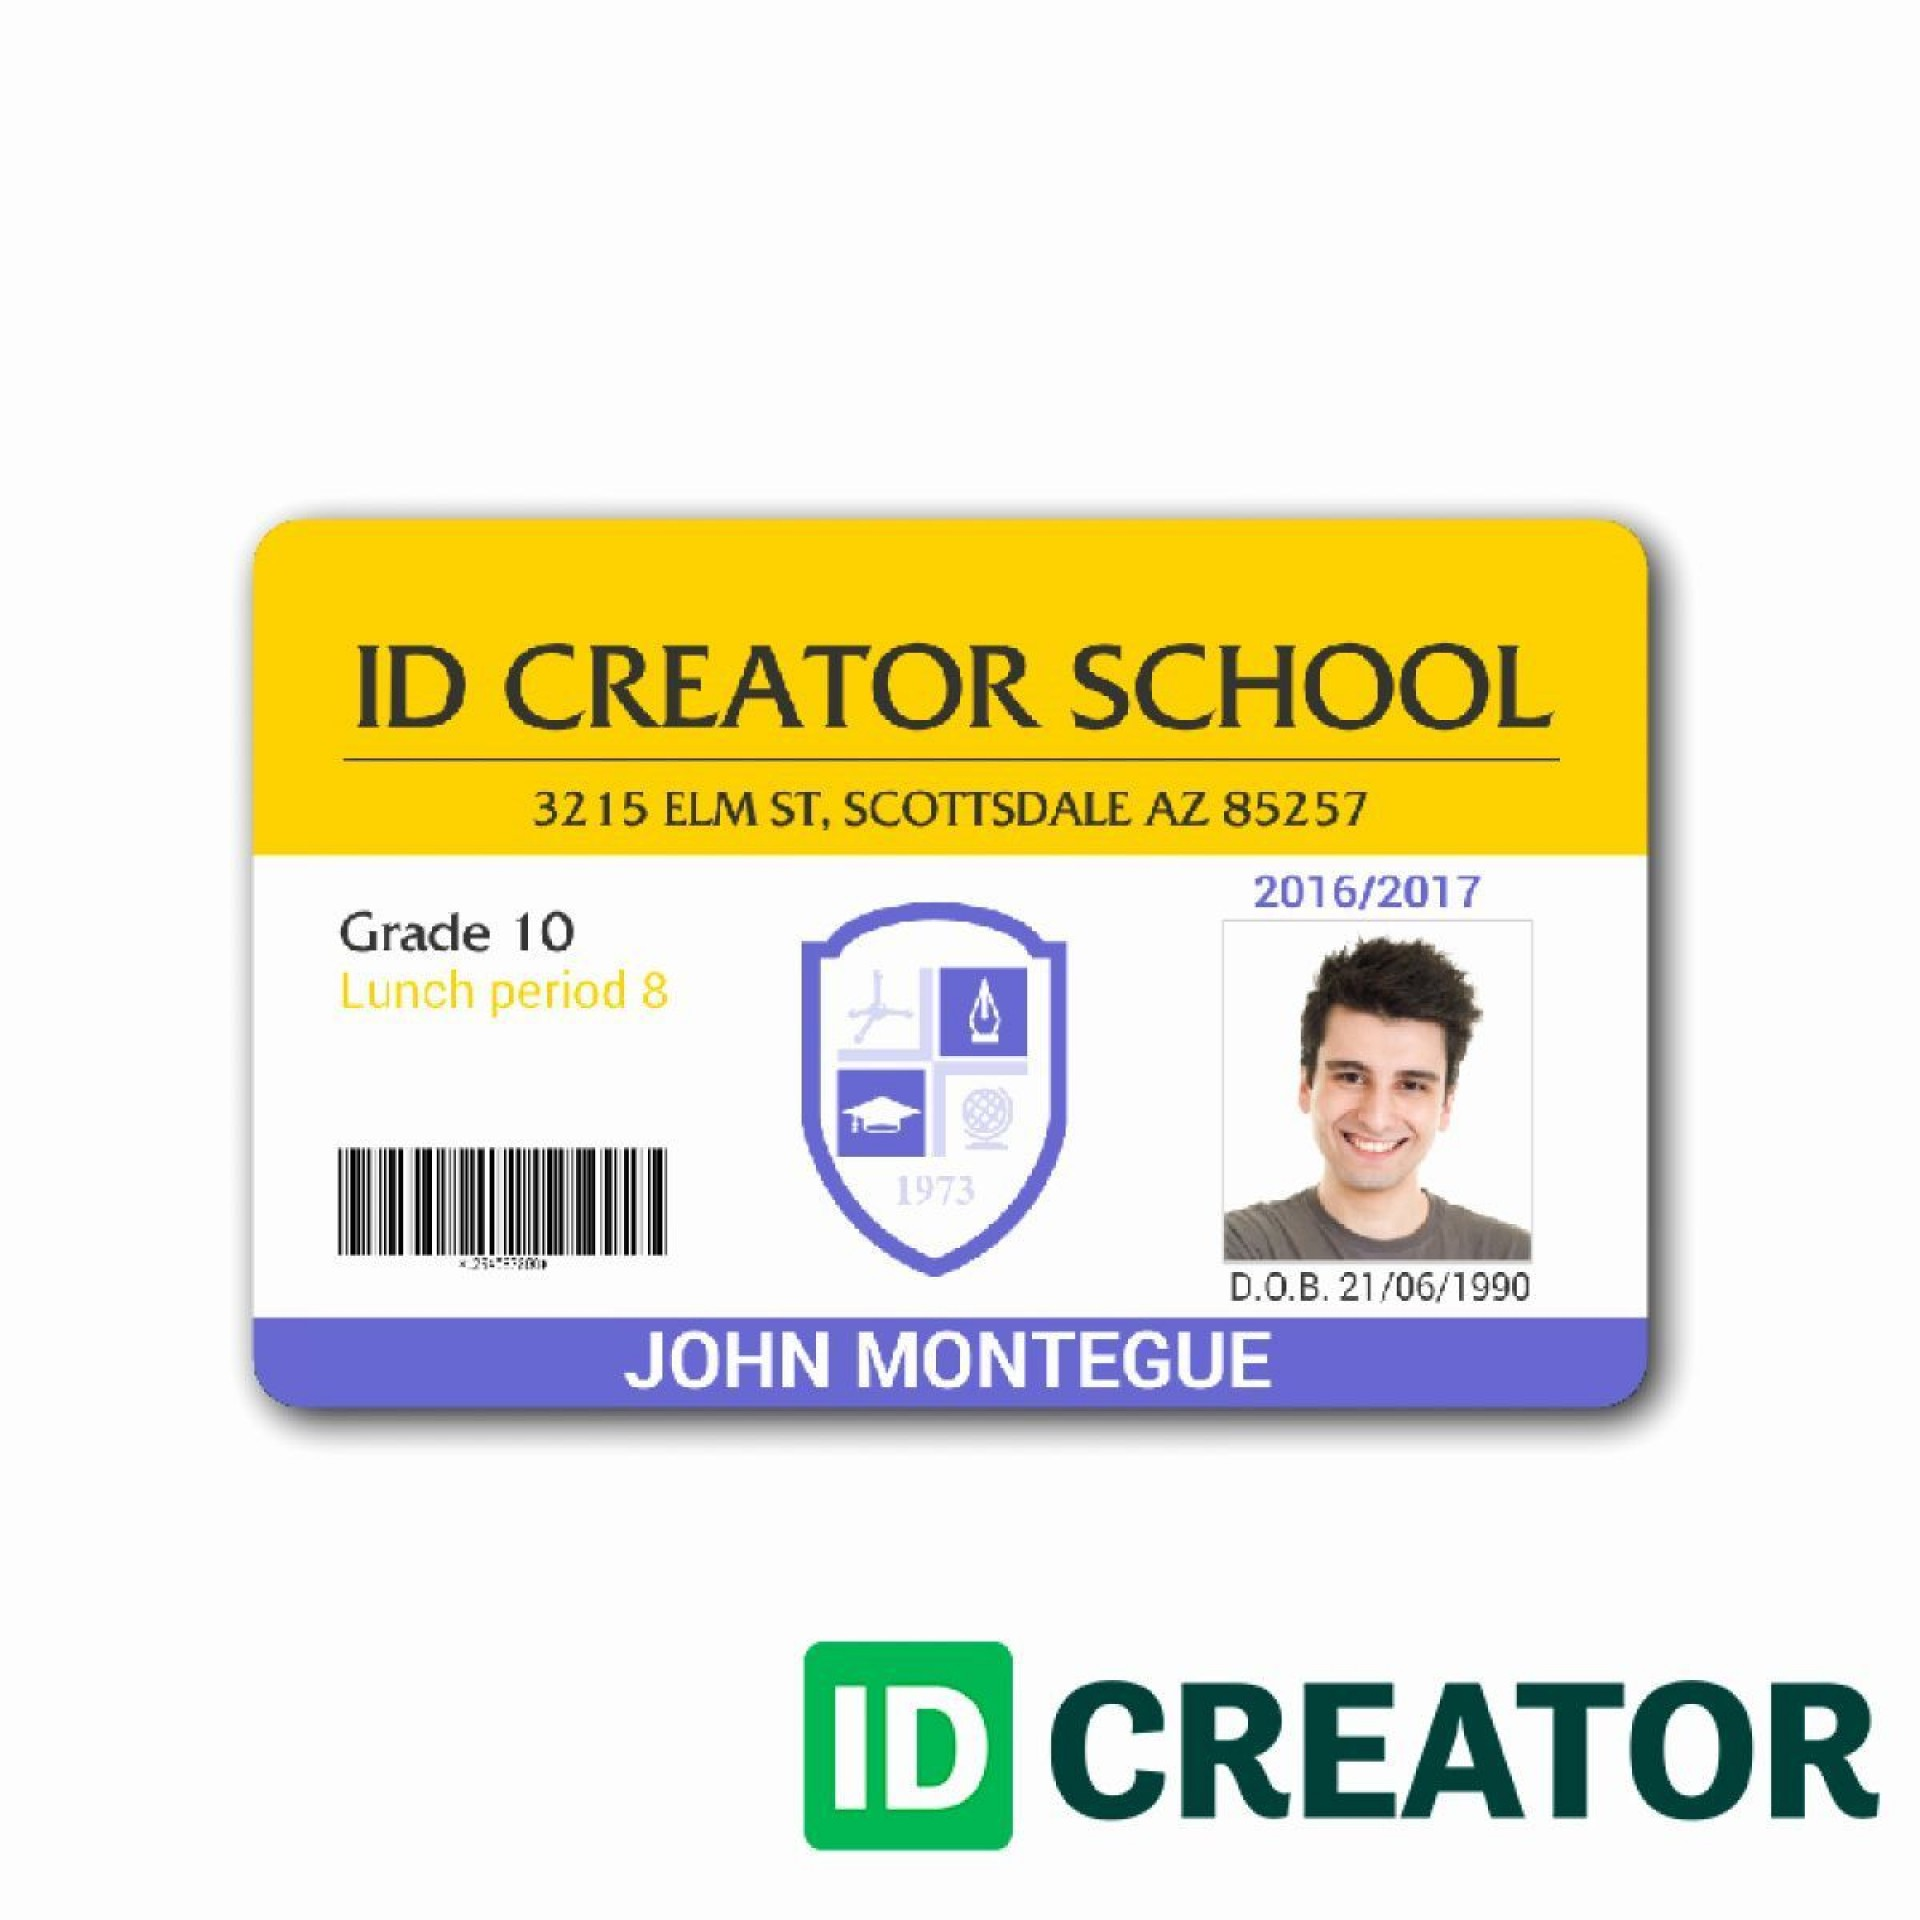 009 Sensational Student Id Card Template Concept  Design Free Download Word Employee Microsoft Vertical Identity Psd1920